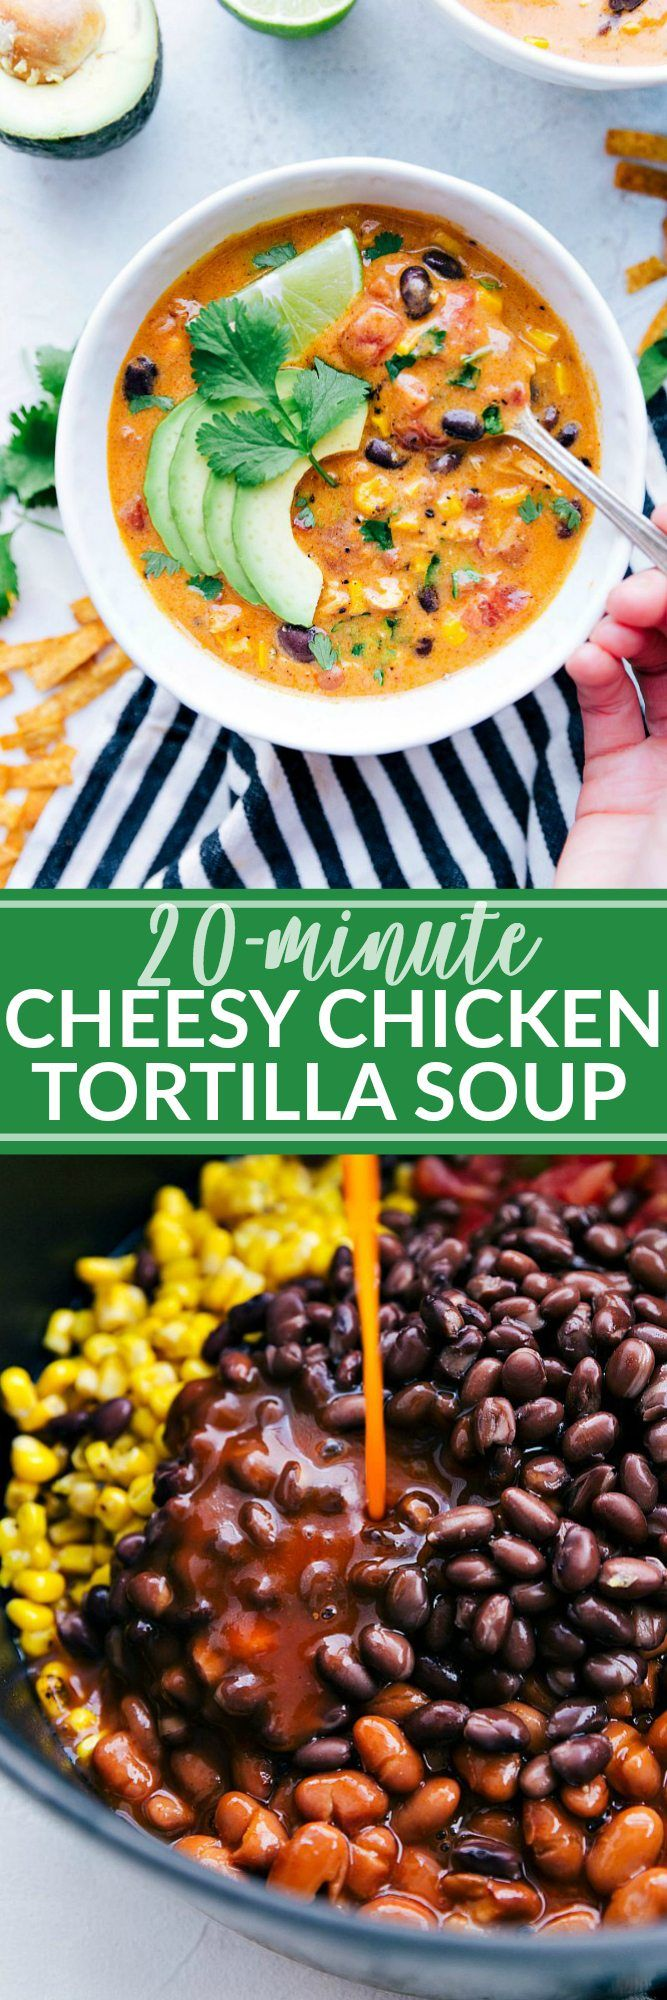 20 MINUTE cheesy and creamy chicken tortilla soup. EVERYONE goes crazy over this simple soup! via chelseasmessyapron.com #comfortfood #soup #chicken #cheesy #tortilla #dinner #lunch #cheesy #creamy #easy #quick #20minute